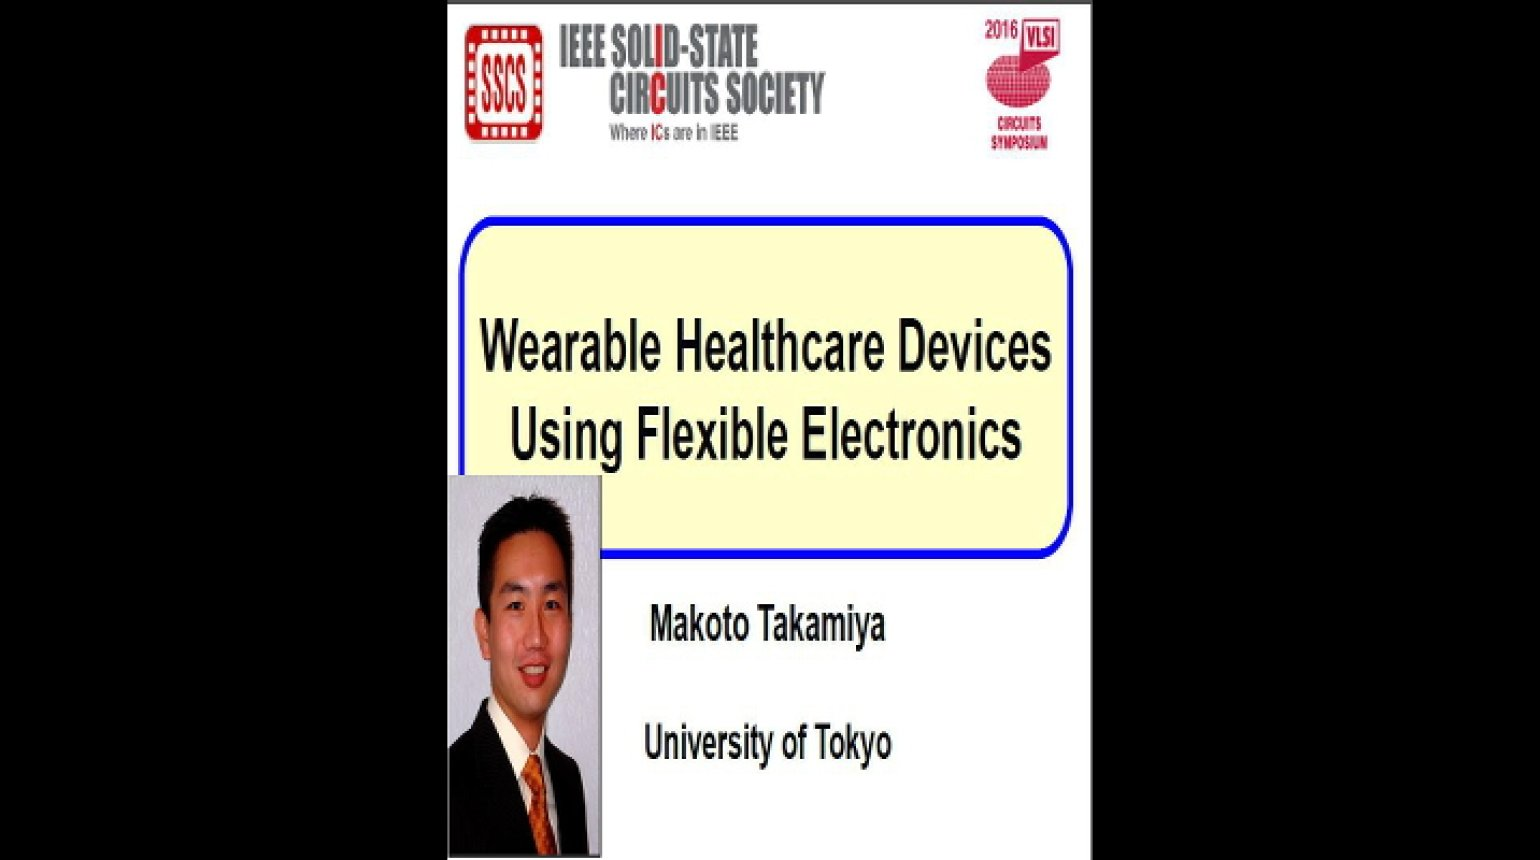 Wearable Healthcare Devices Using Flexible Electronics Video